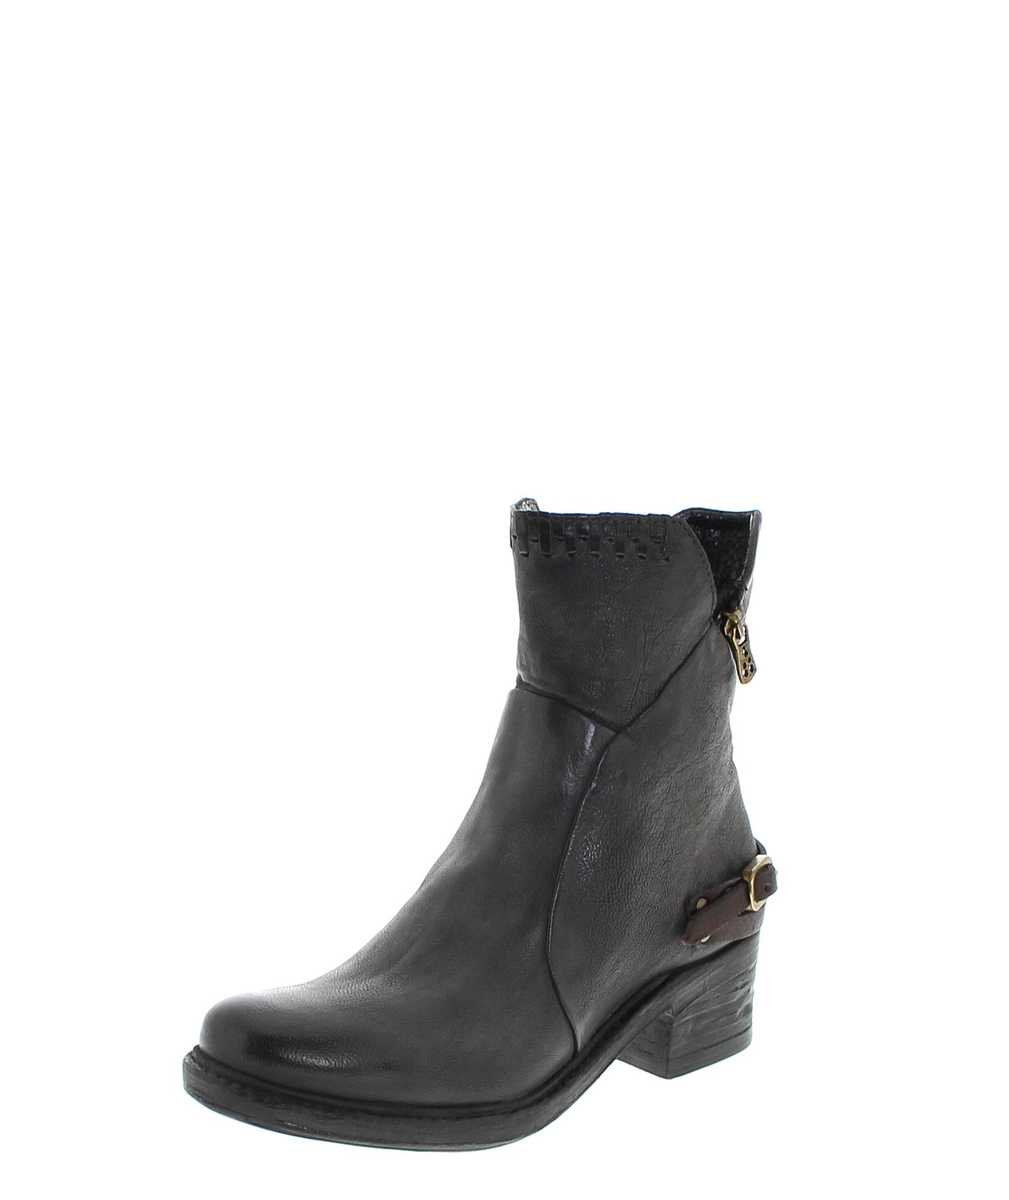 A.S.98 261202 Smoke Nero Ankle Boot - grey black